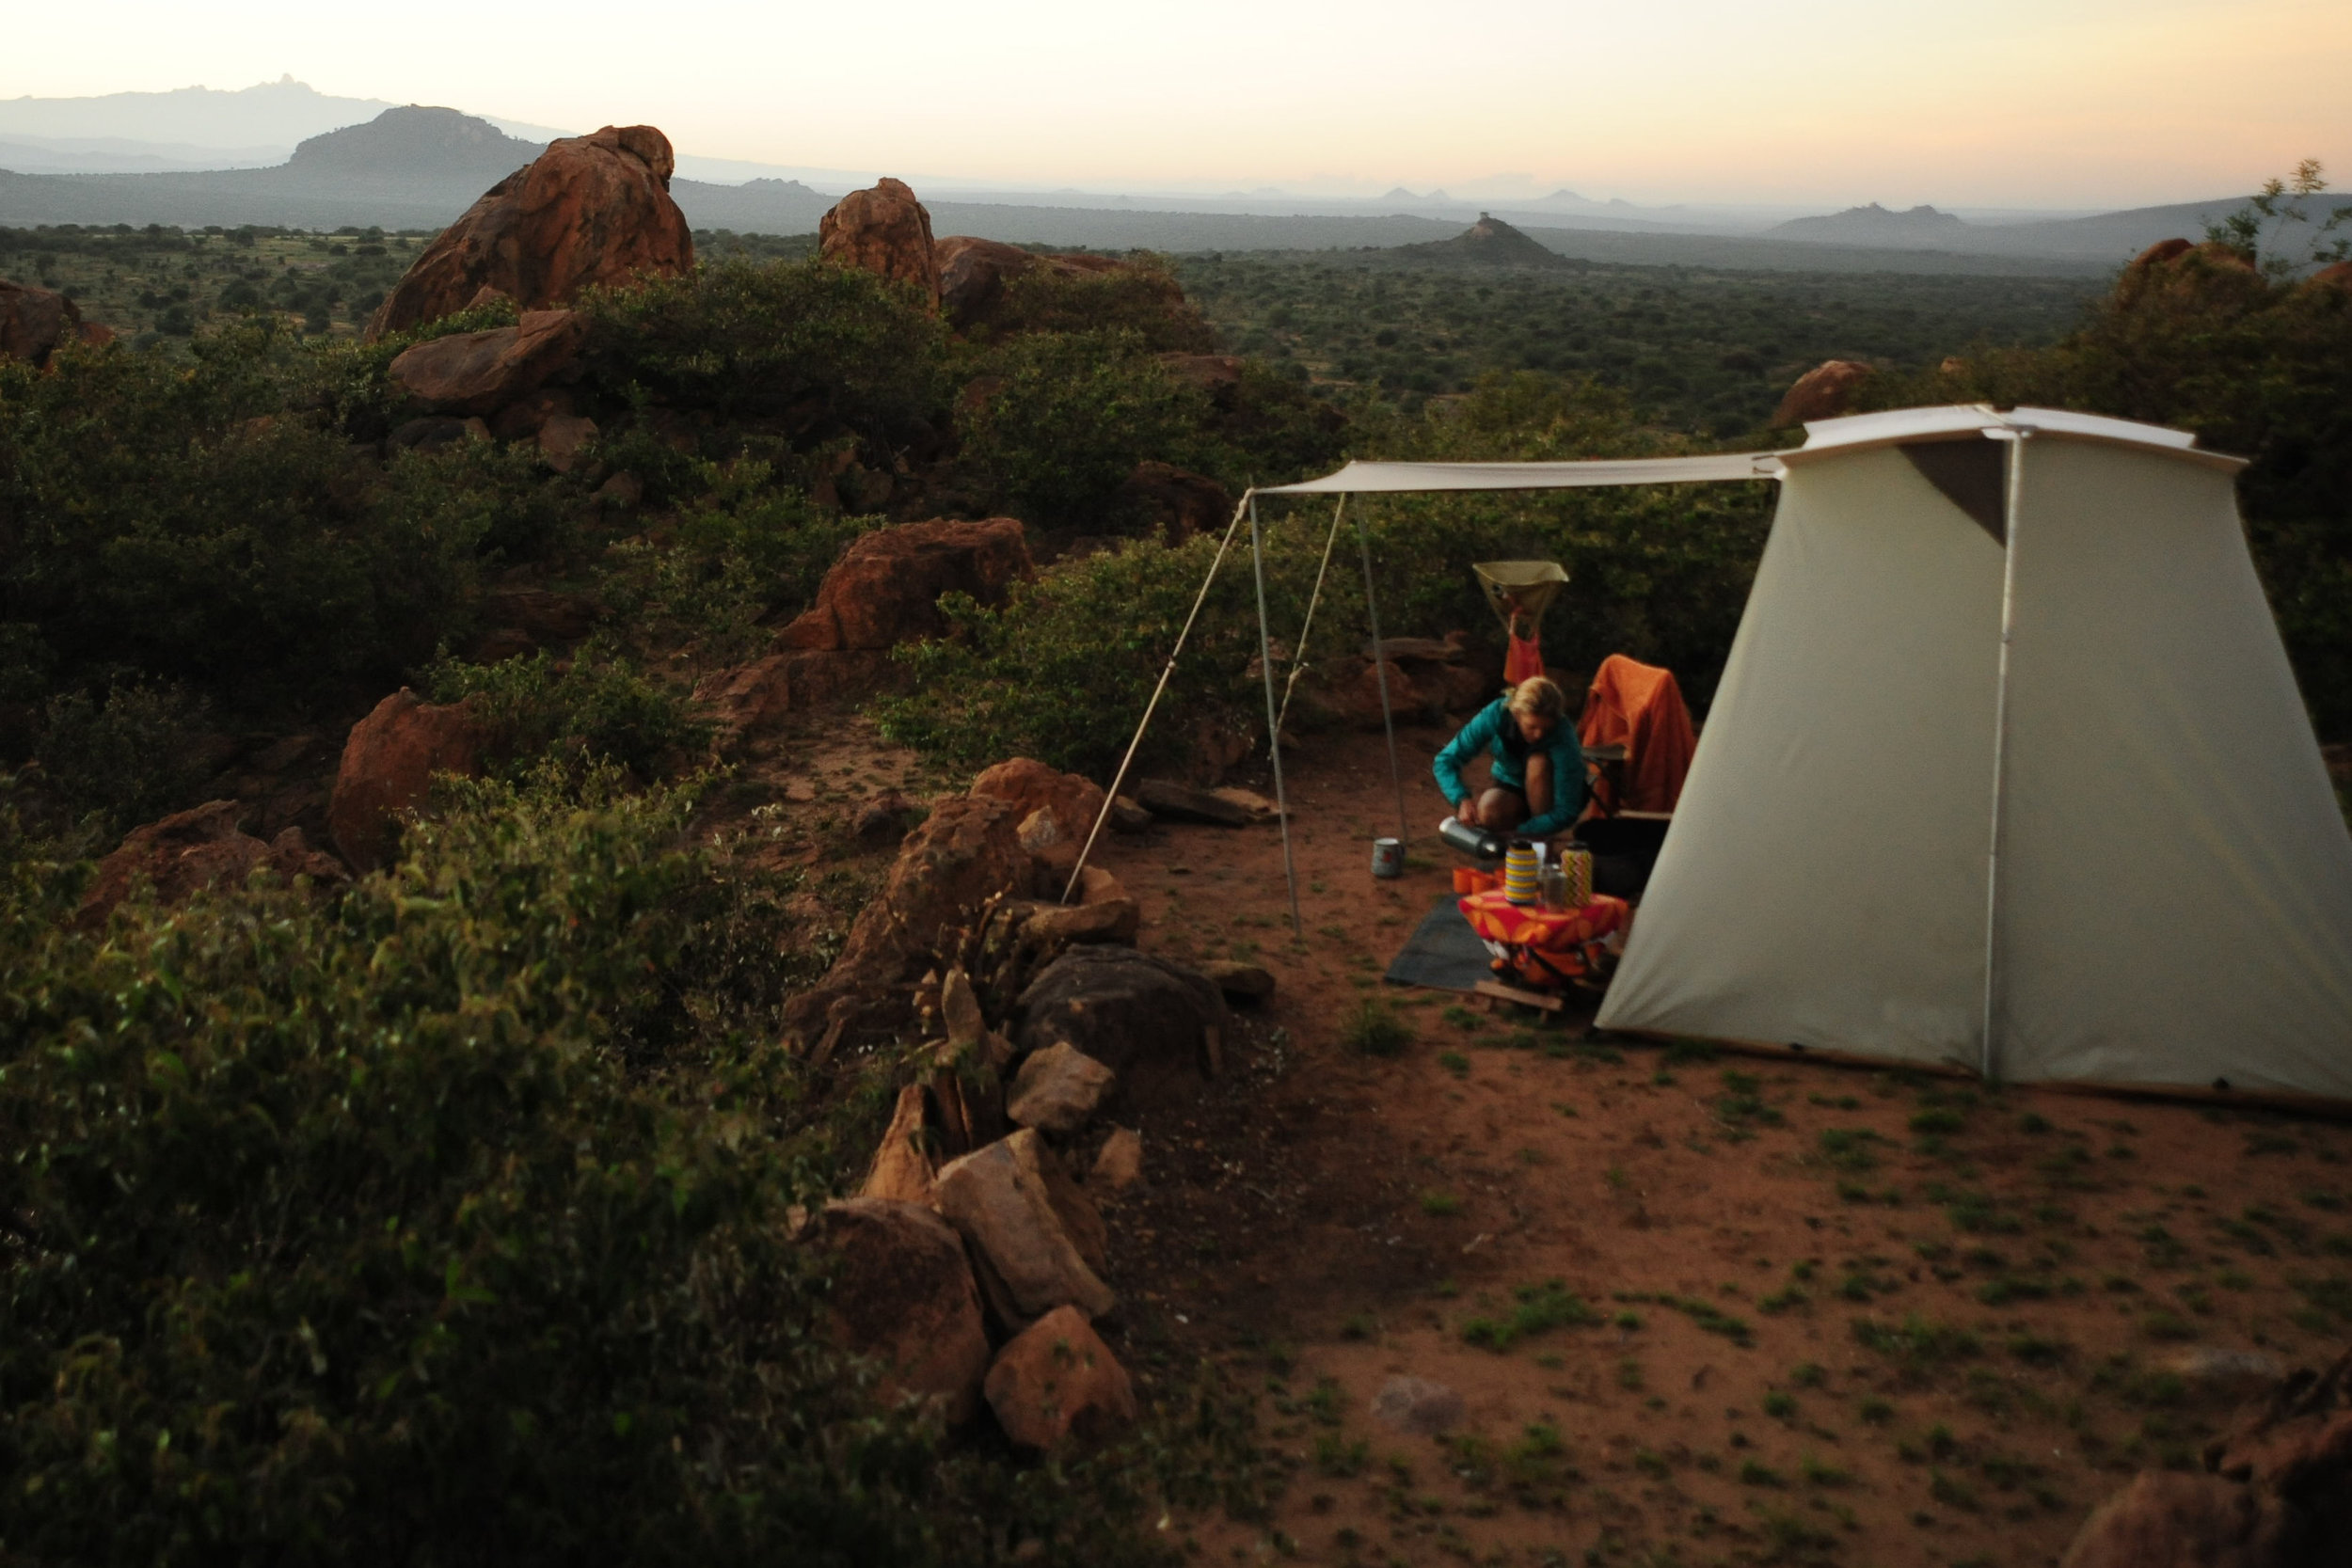 - Exclusive Mobile Walking Safari. Camels moving camp each day. Staying in Kodiak Canvas Tents.